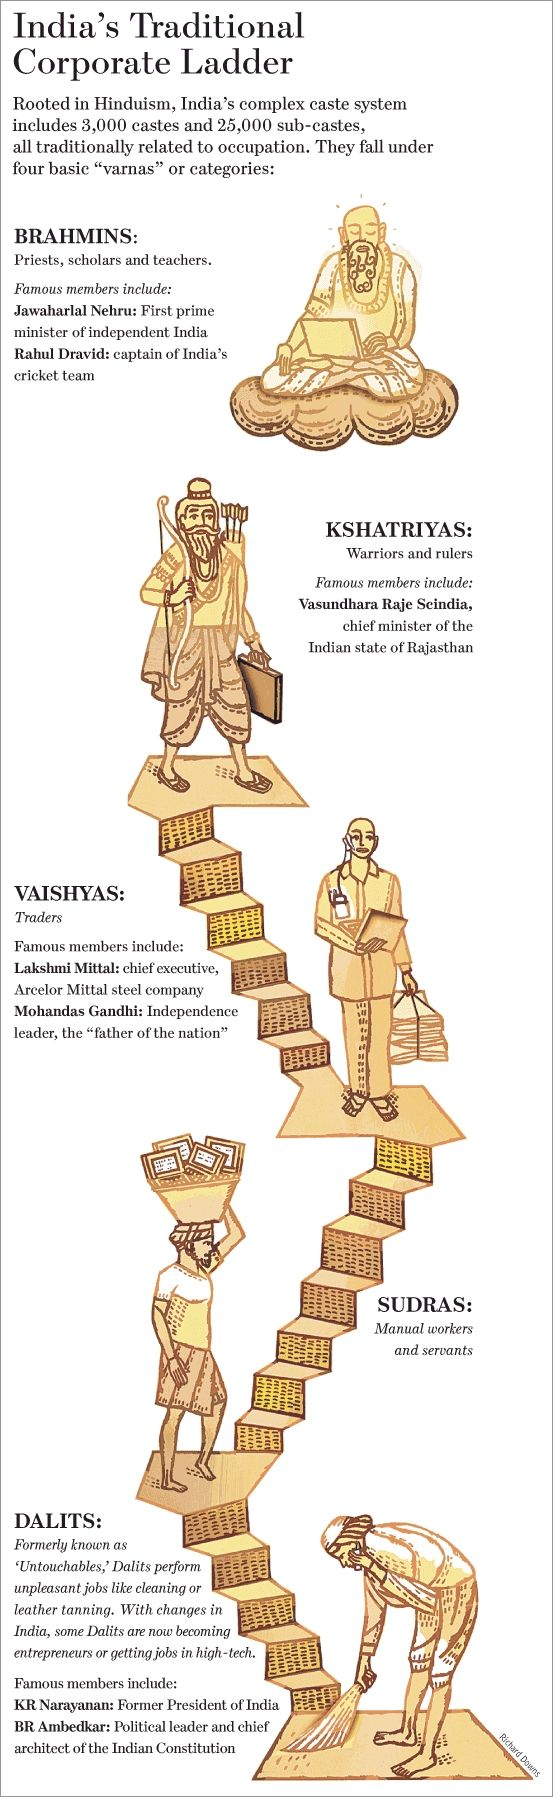 This is the caste system in India. My baap and Sassur were both part of the Brahmin caste. However, this does not always mean that we are the wealthiest. Both my family and my groom's family have stuggled with money all our lives.